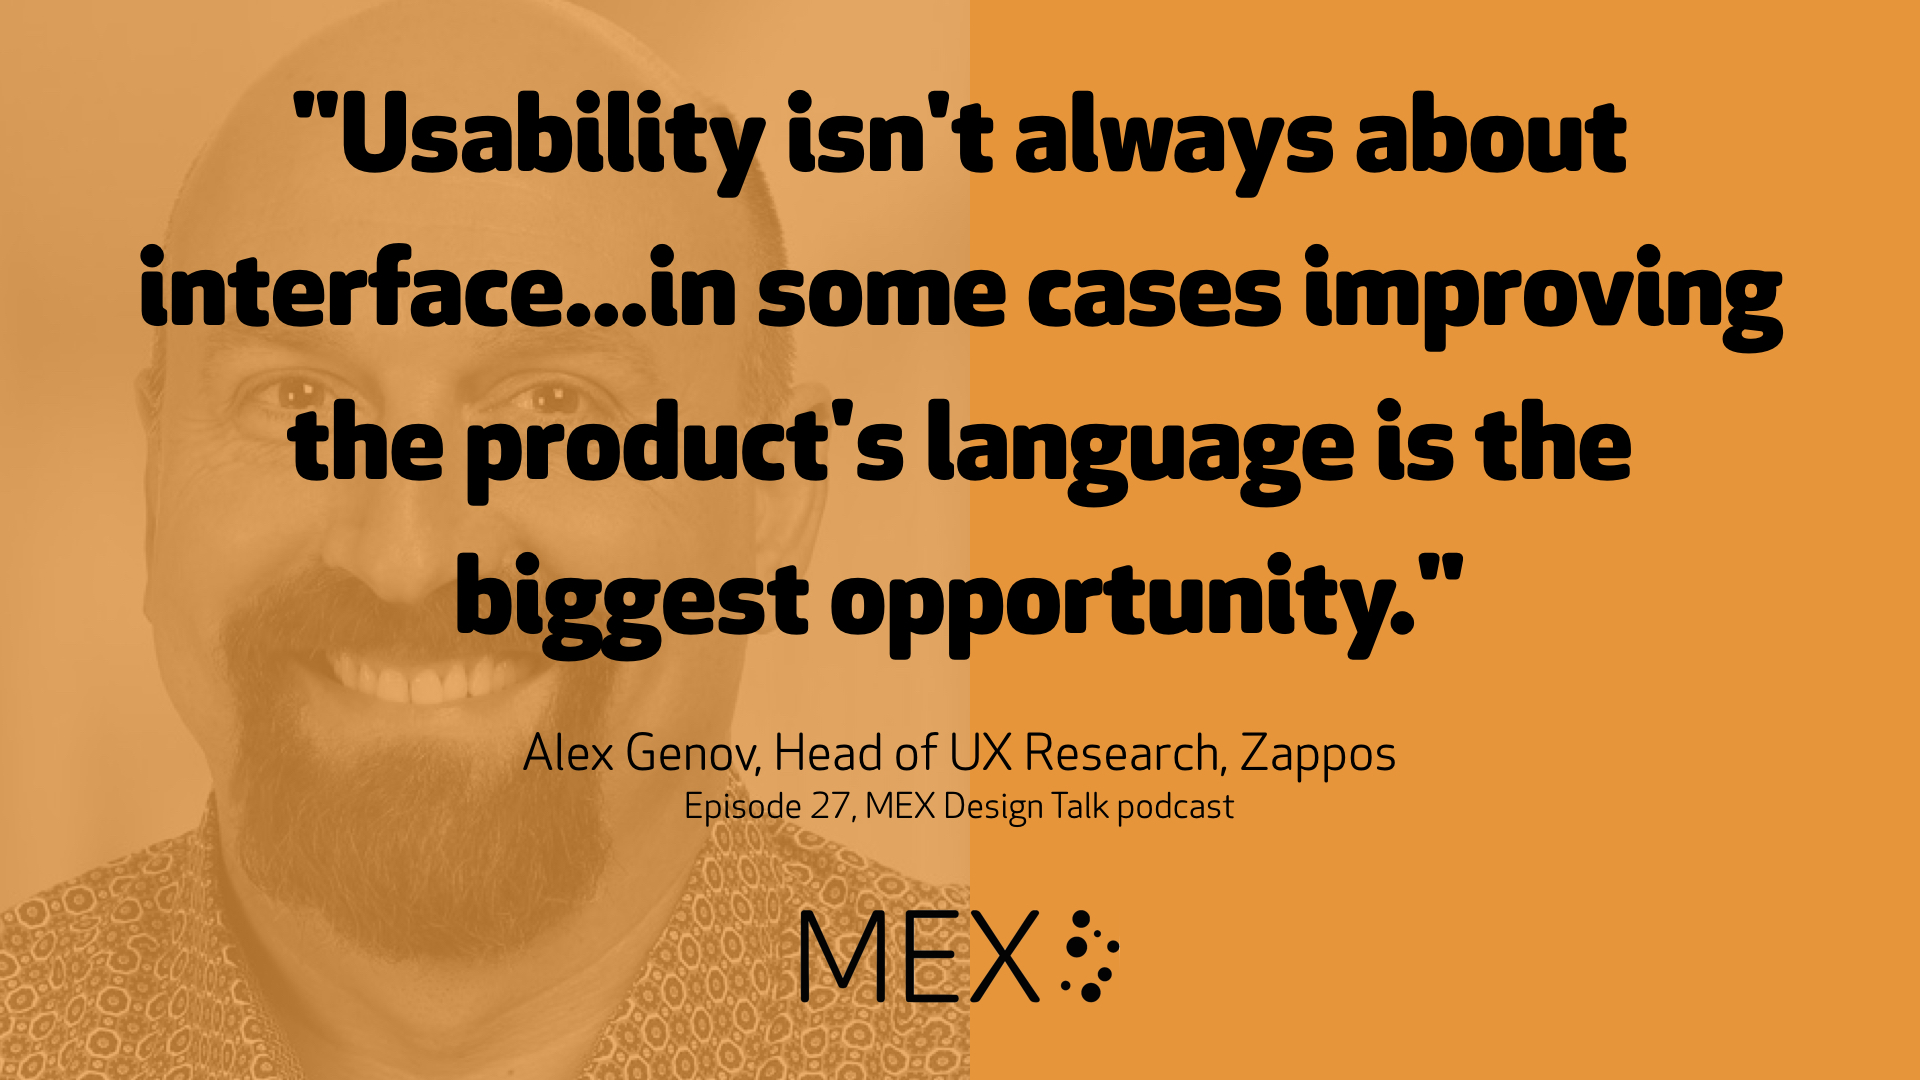 """Usability isn't always about interface...in some cases improving the product's language is the biggest opportunity."" Alex Genov, Head of UX Research, Zappos Episode 27, MEX Design Talk podcast"